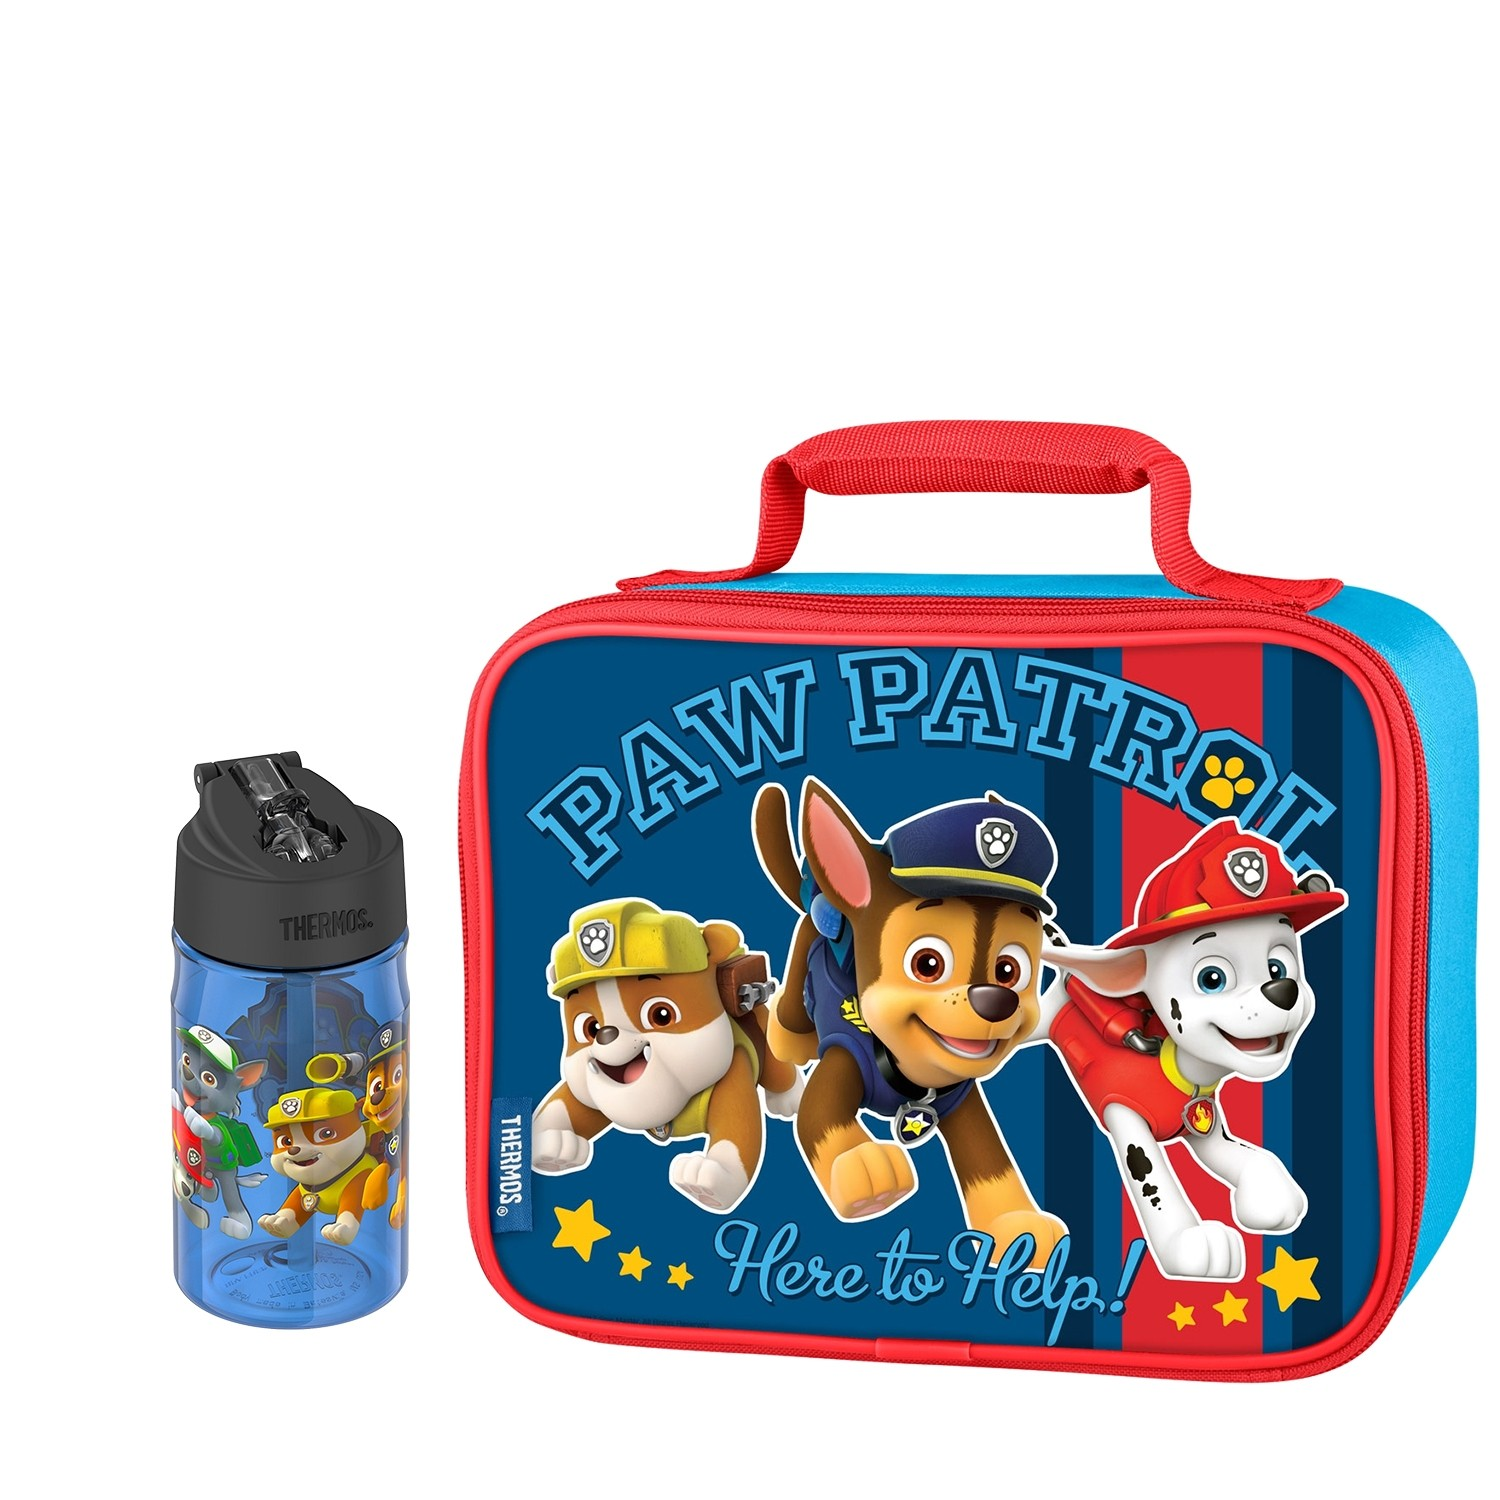 SOFT LUNCH BOX WITH WATER BOTTLE 12OZ, PAW PATROL